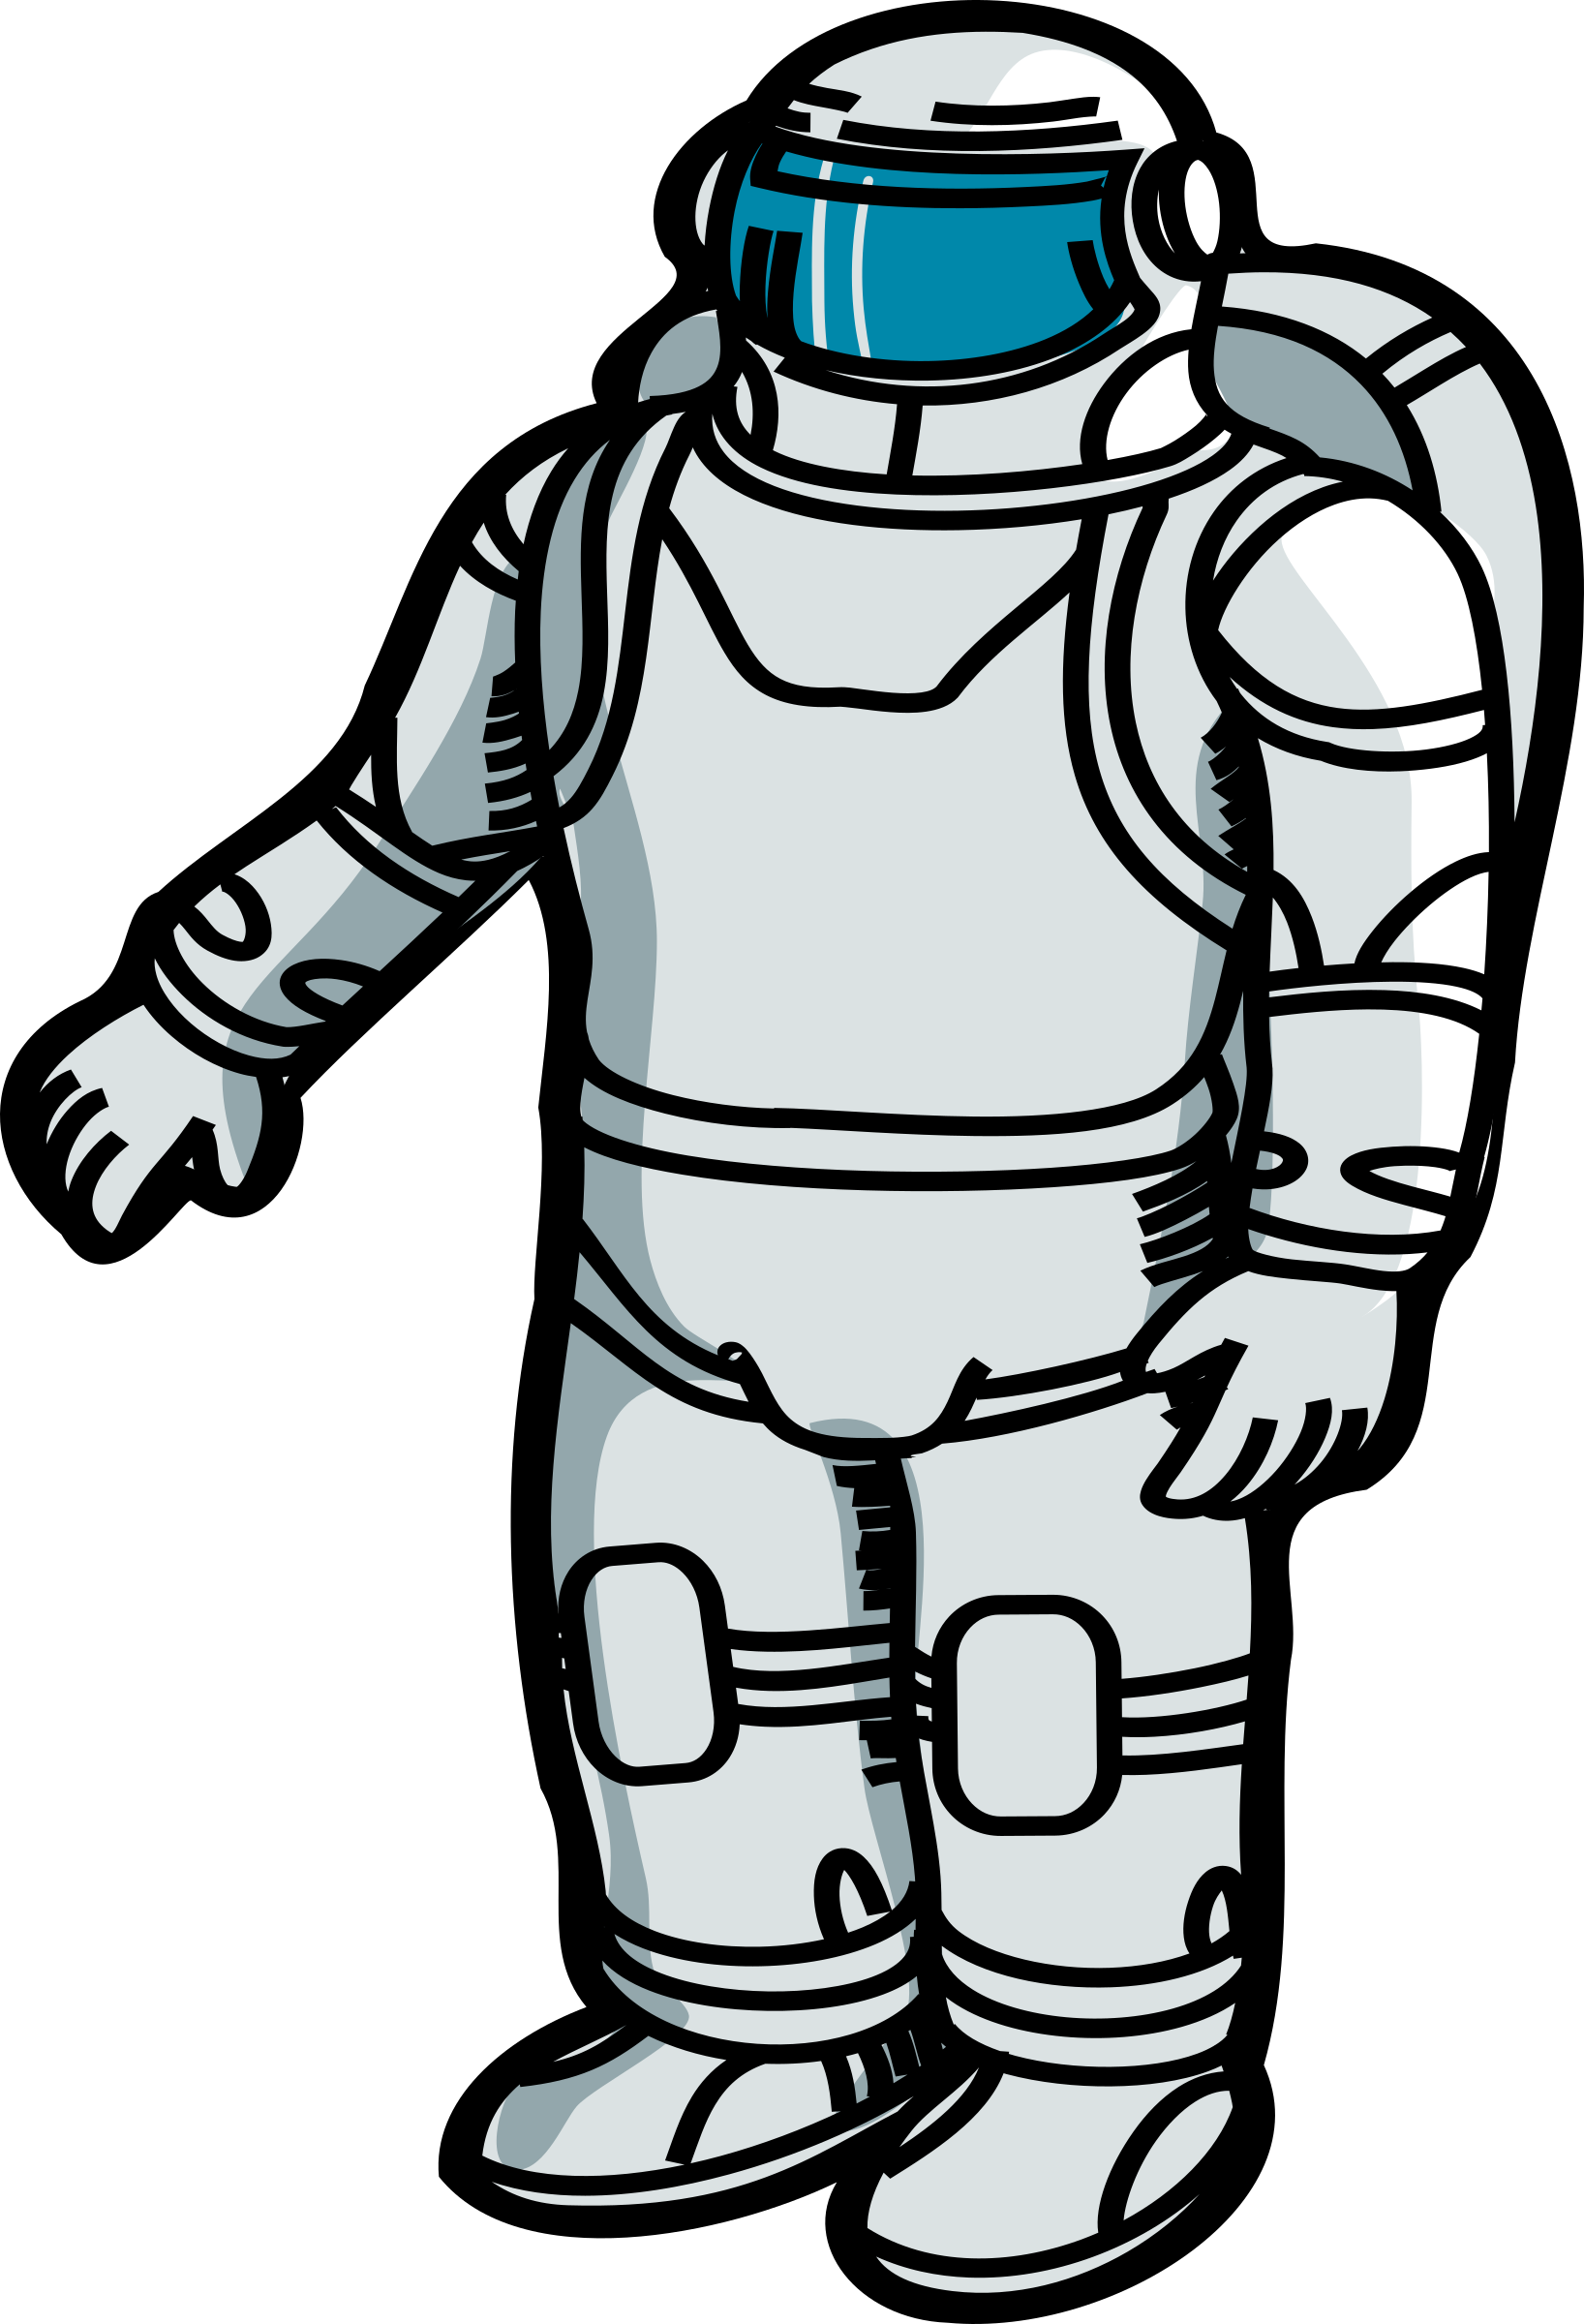 Simple Astronaut by j4p4n